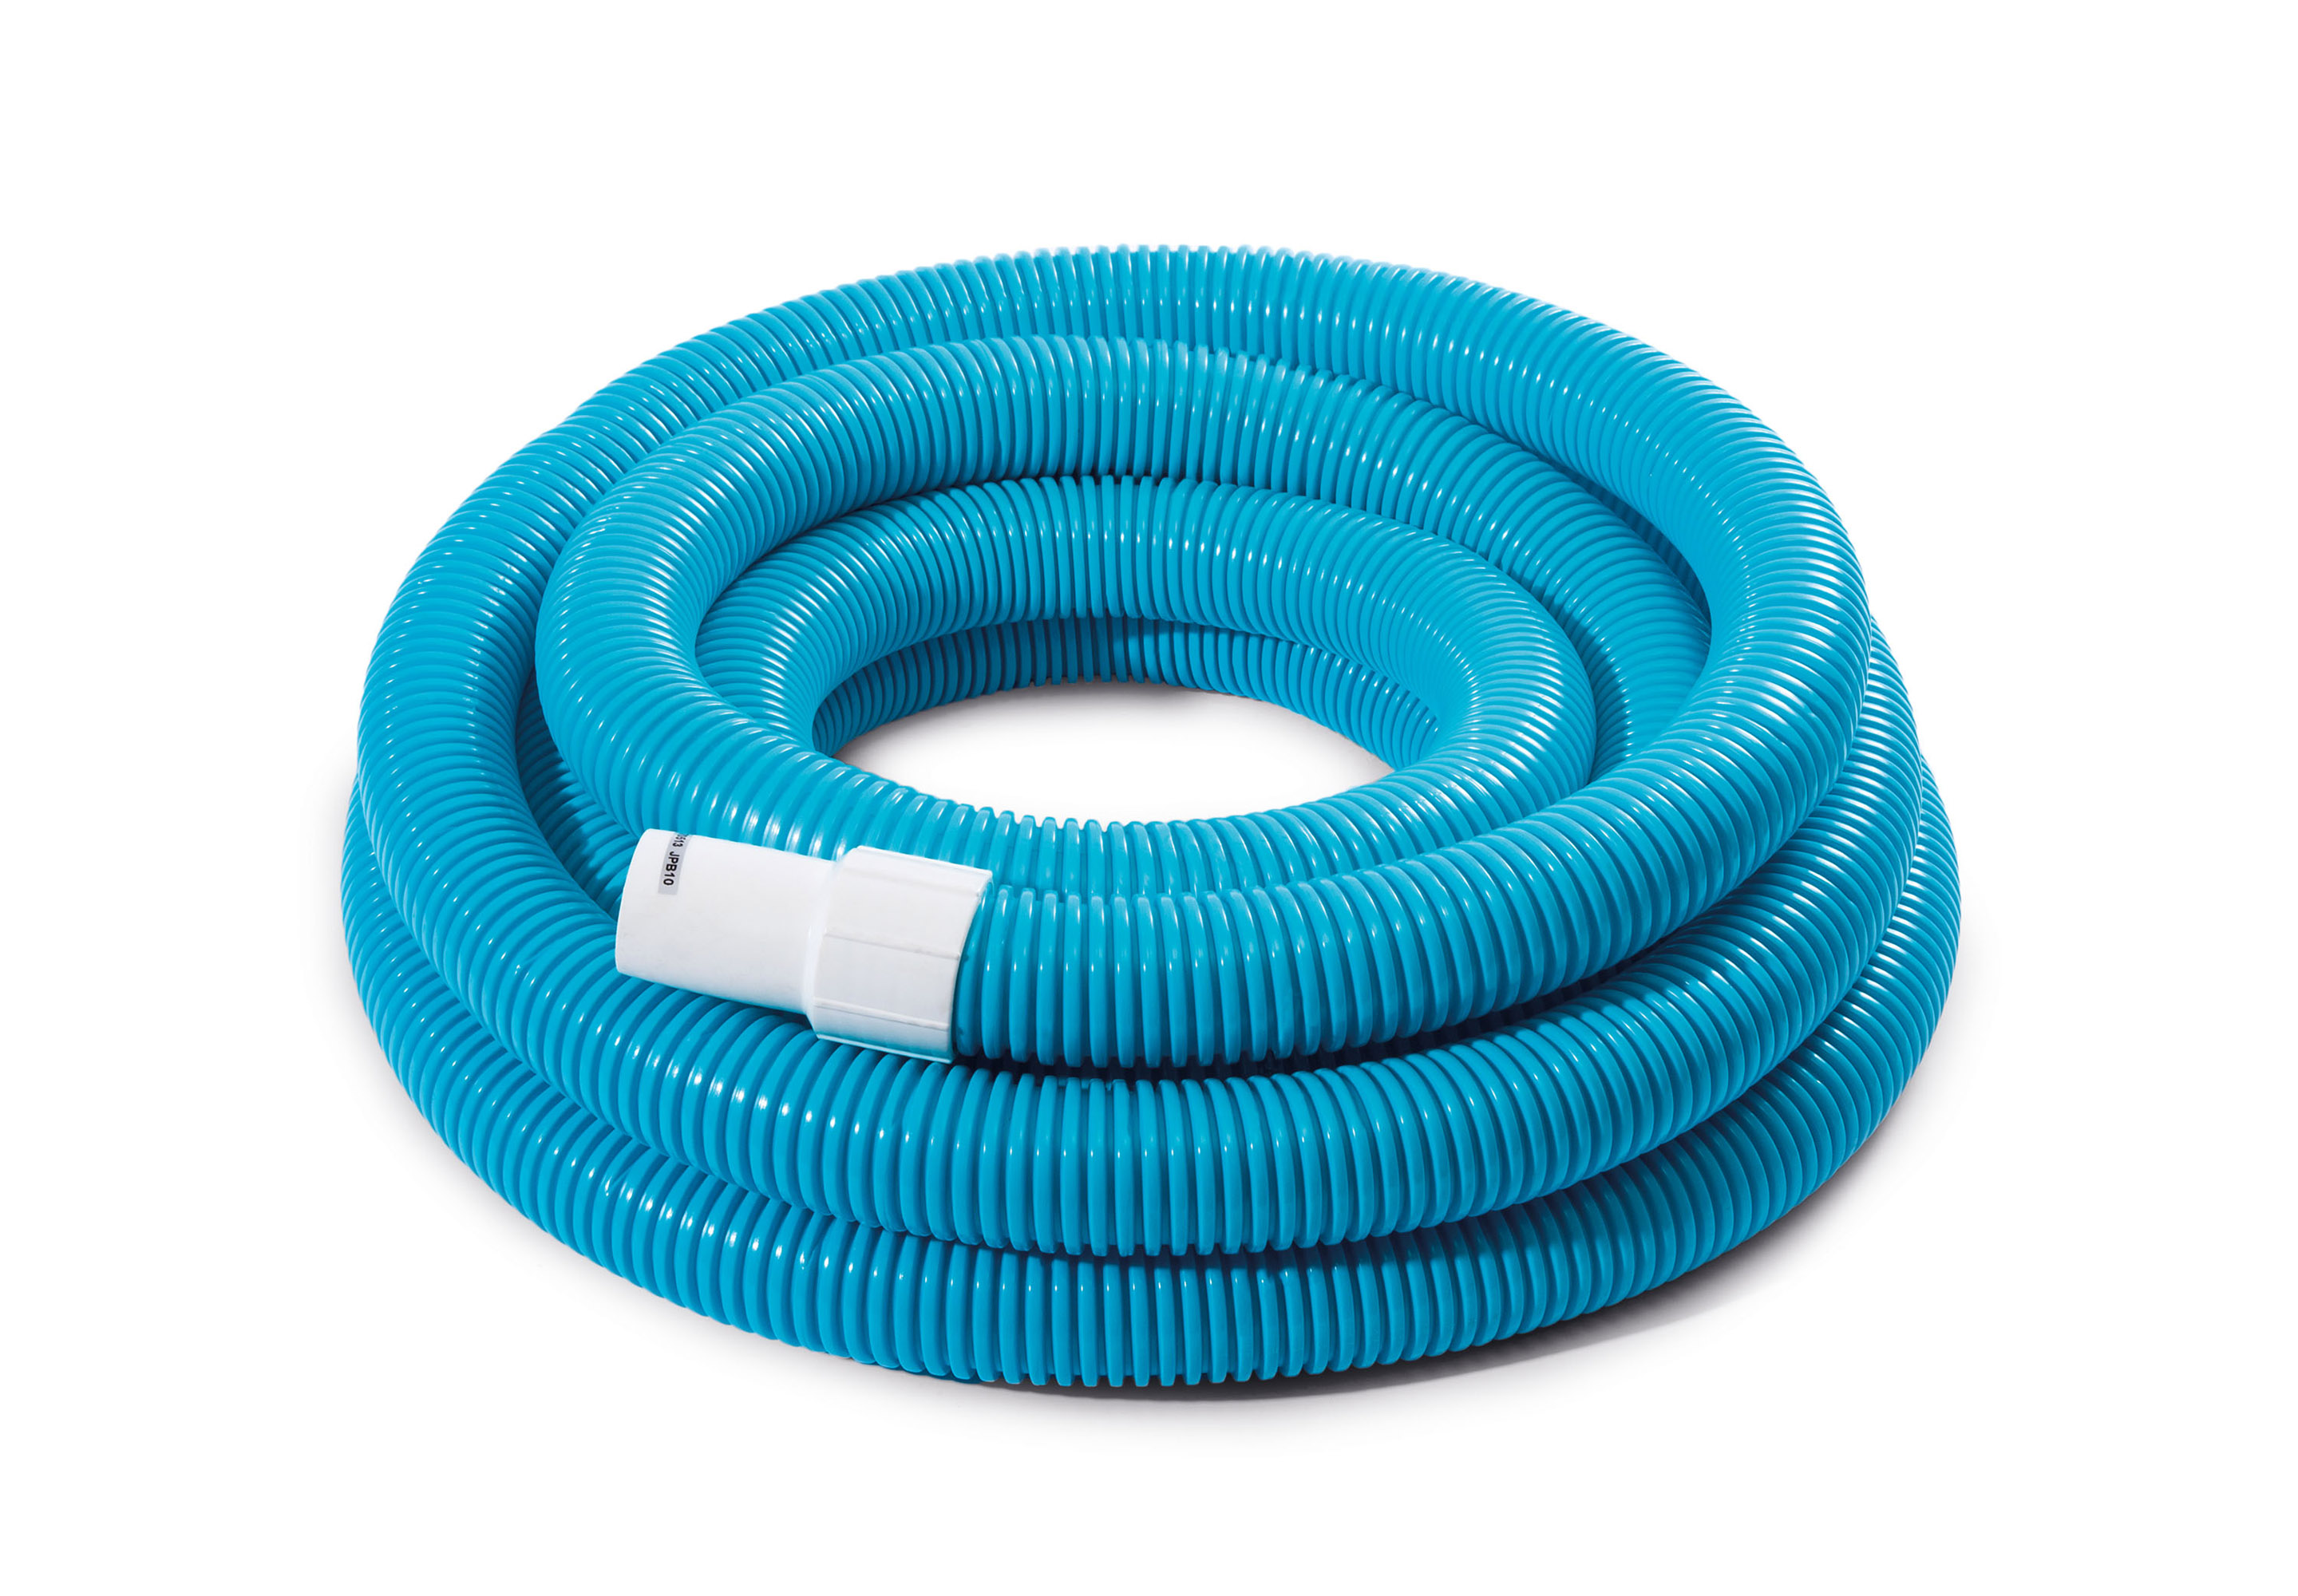 Pool Hose Details About Intex 1 1 2 Inch Spiral Deluxe Vacuum Hose For Pool Filters Maintenance 25 Feet